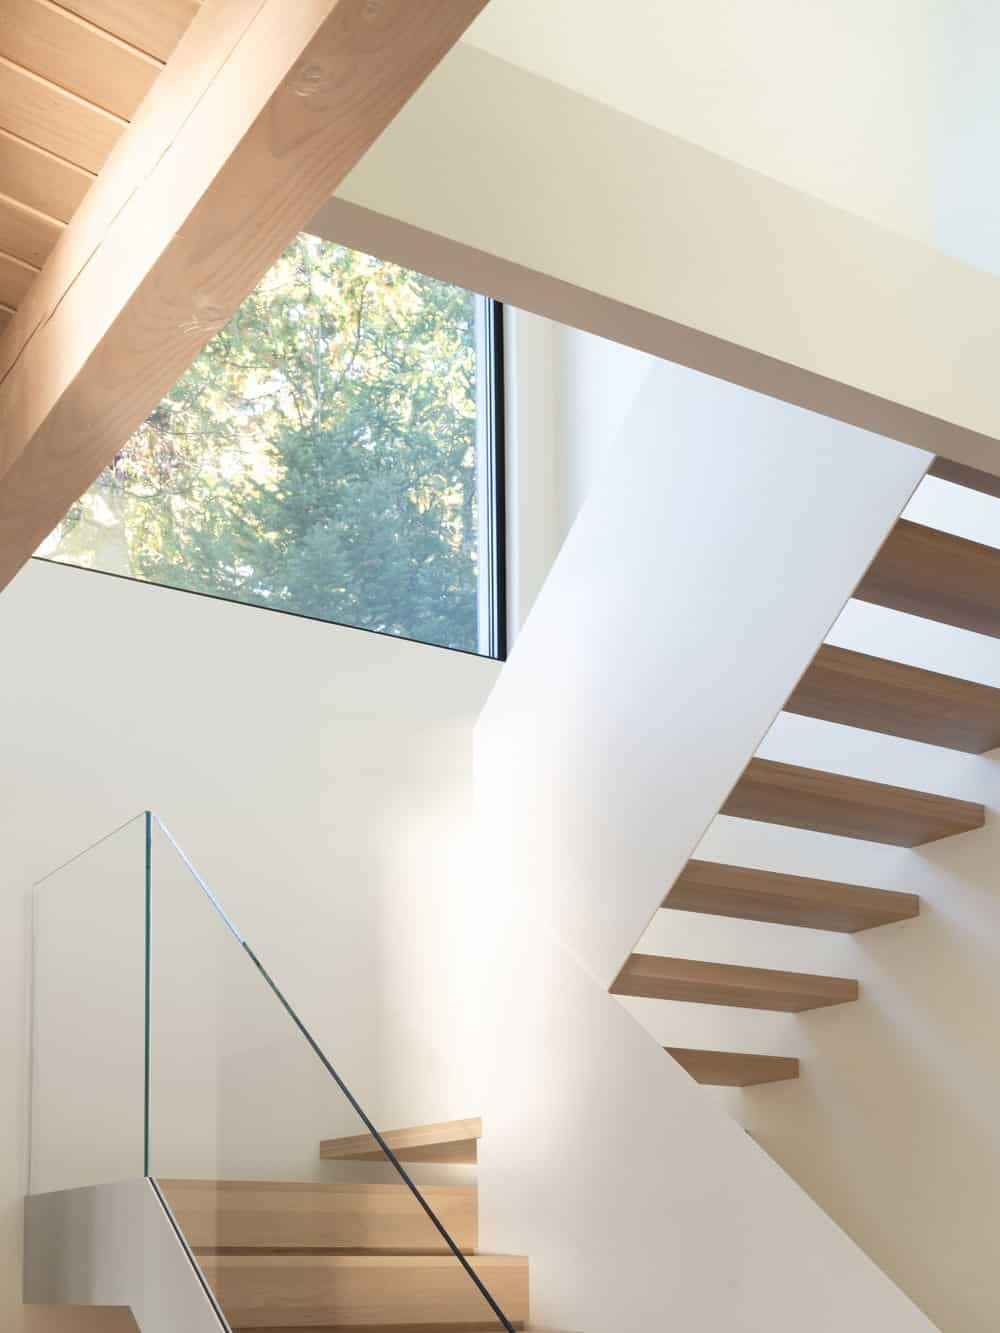 This is a closer look at the staircase with a unique and simple floating design to its wooden steps.